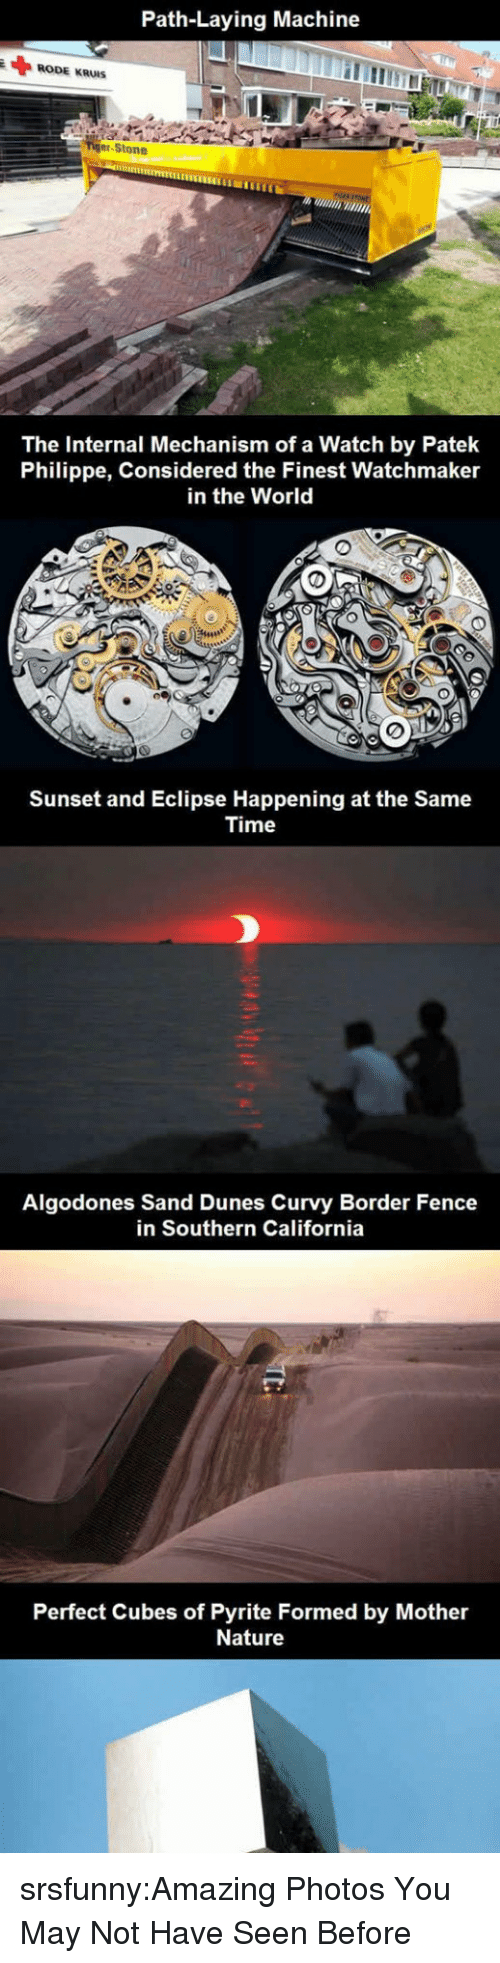 cubes: Path-Laying Machine  RODE KRUIS  er-Stone  The Internal Mechanism of a Watch by Patek  Philippe, Considered the Finest Watchmaker  in the World  Sunset and Eclipse Happening at the Same  Time  Algodones Sand Dunes Curvy Border Fence  in Southern California  Perfect Cubes of Pyrite Formed by Mother  Nature srsfunny:Amazing Photos You May Not Have Seen Before